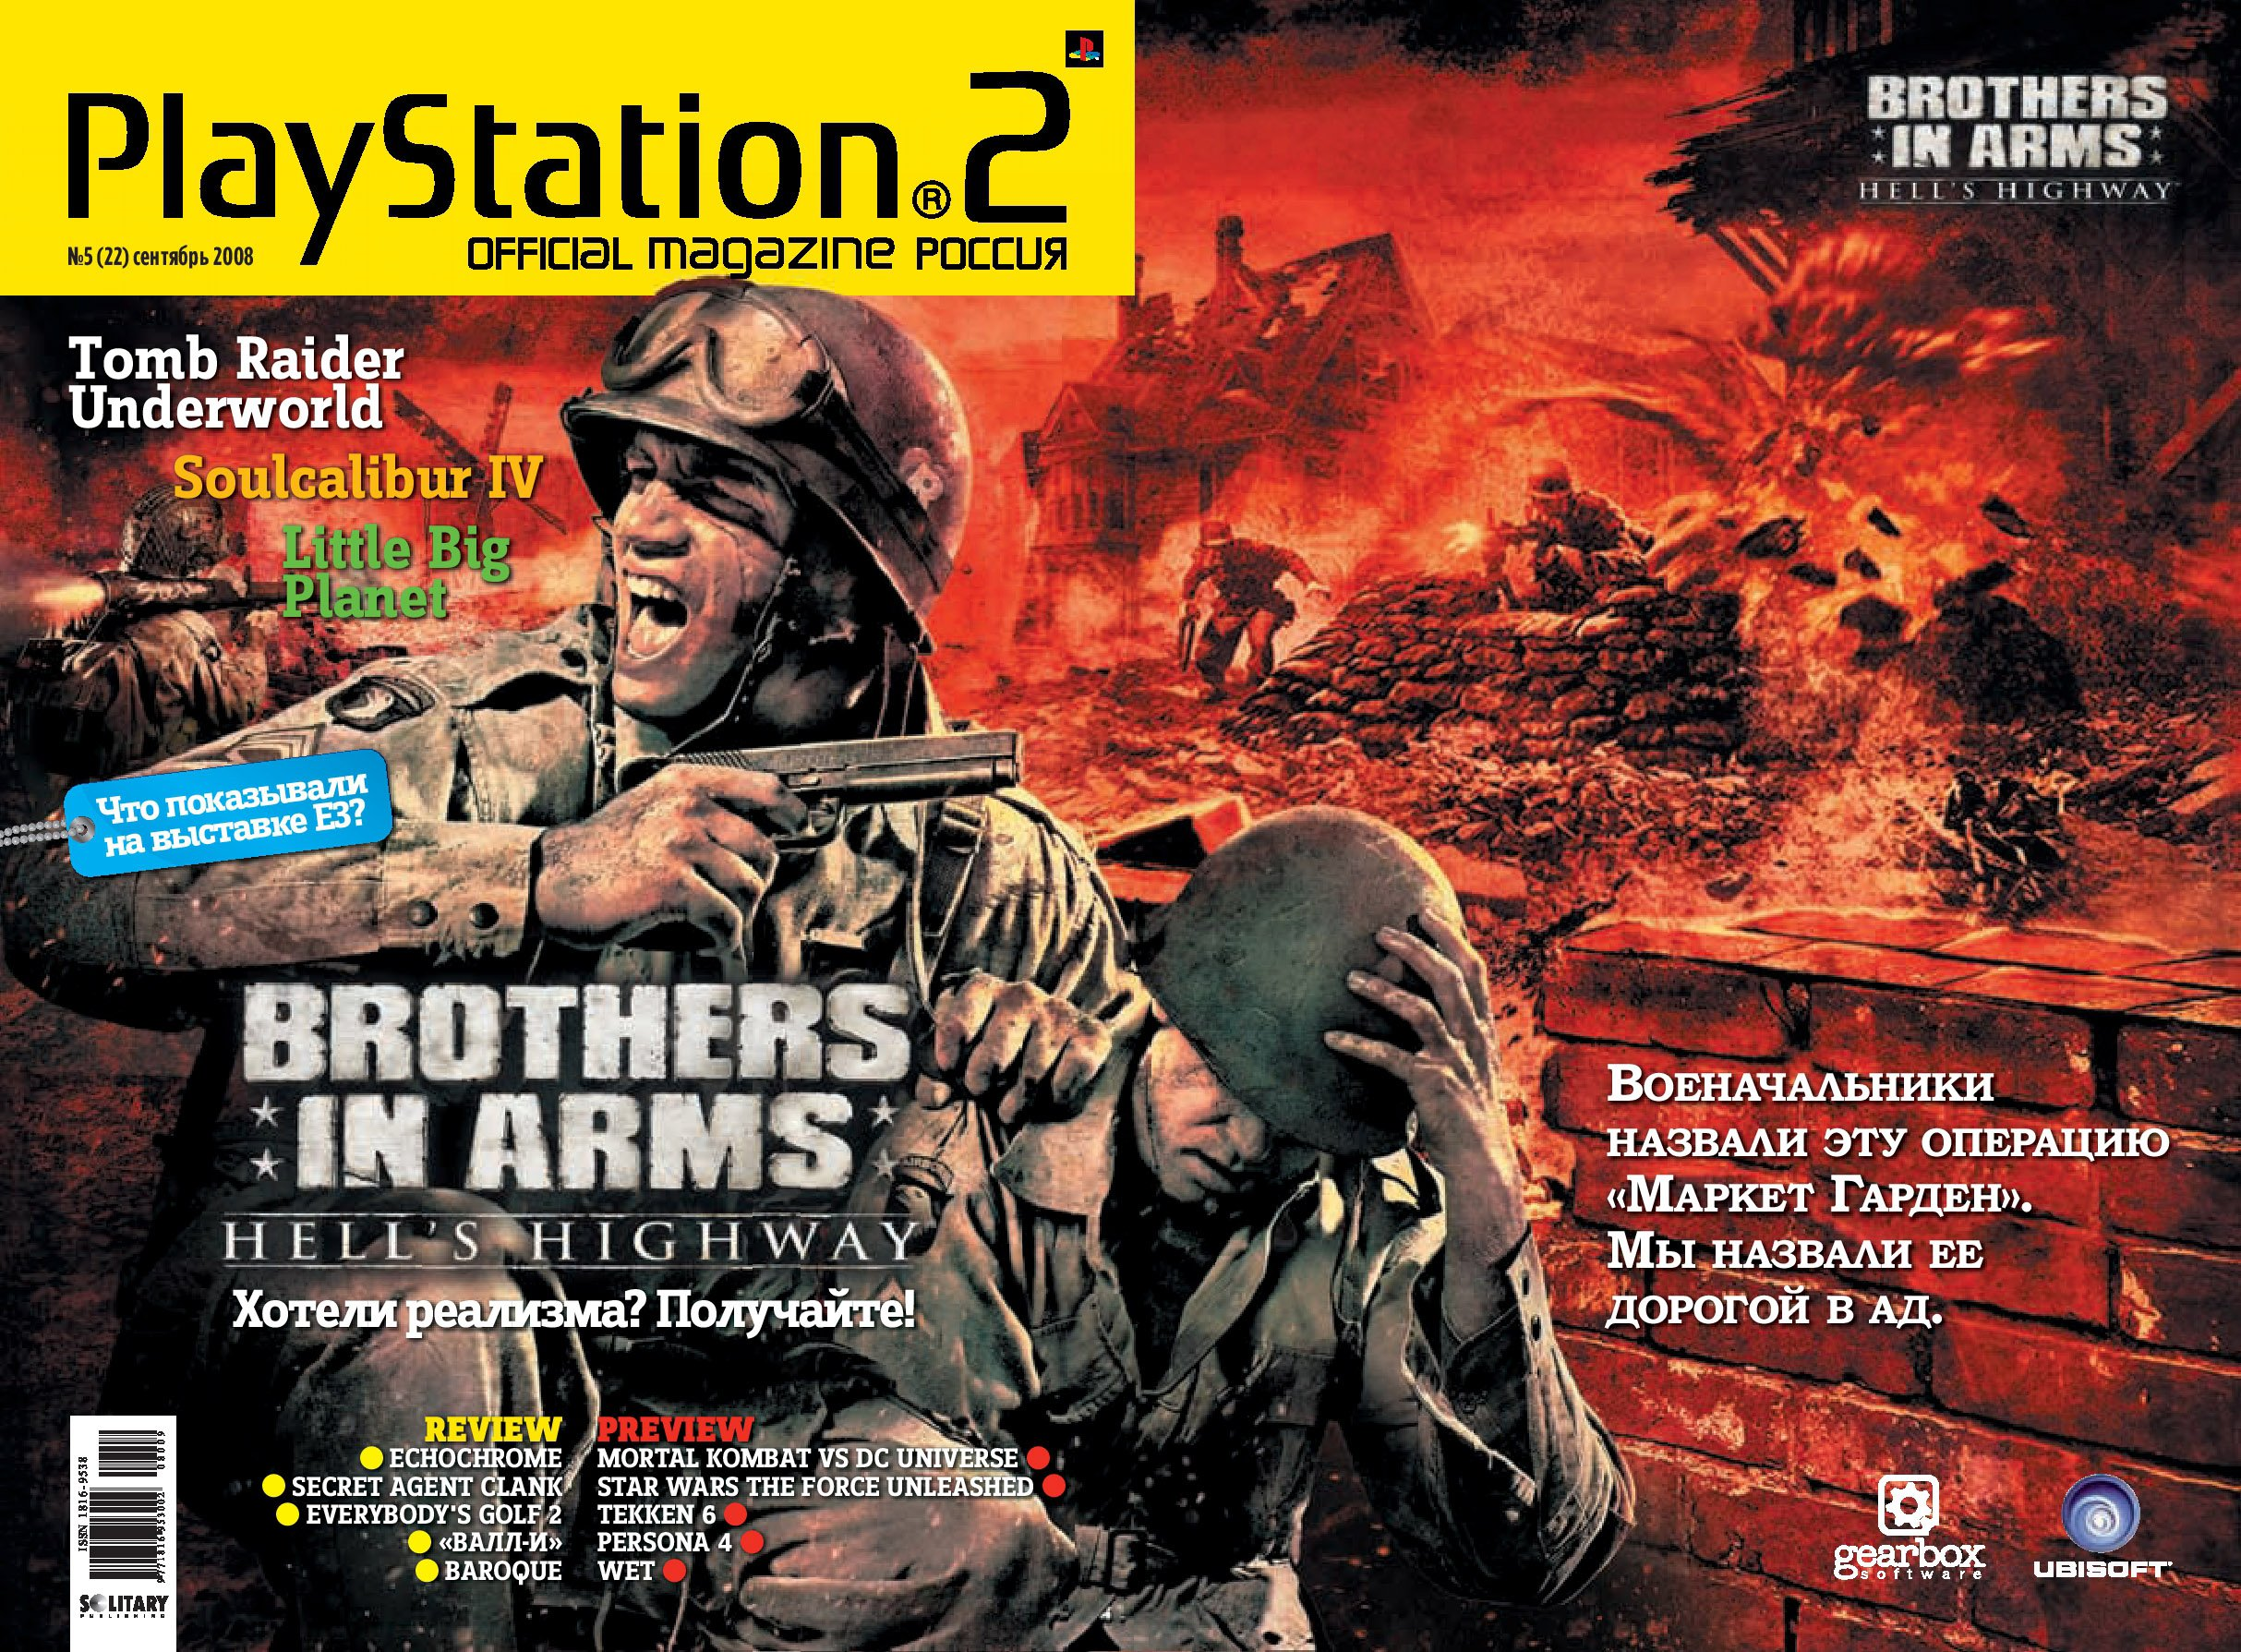 Playstation 2 Official Magazine (Russia) Issue 22 - Sept. '08 *full*